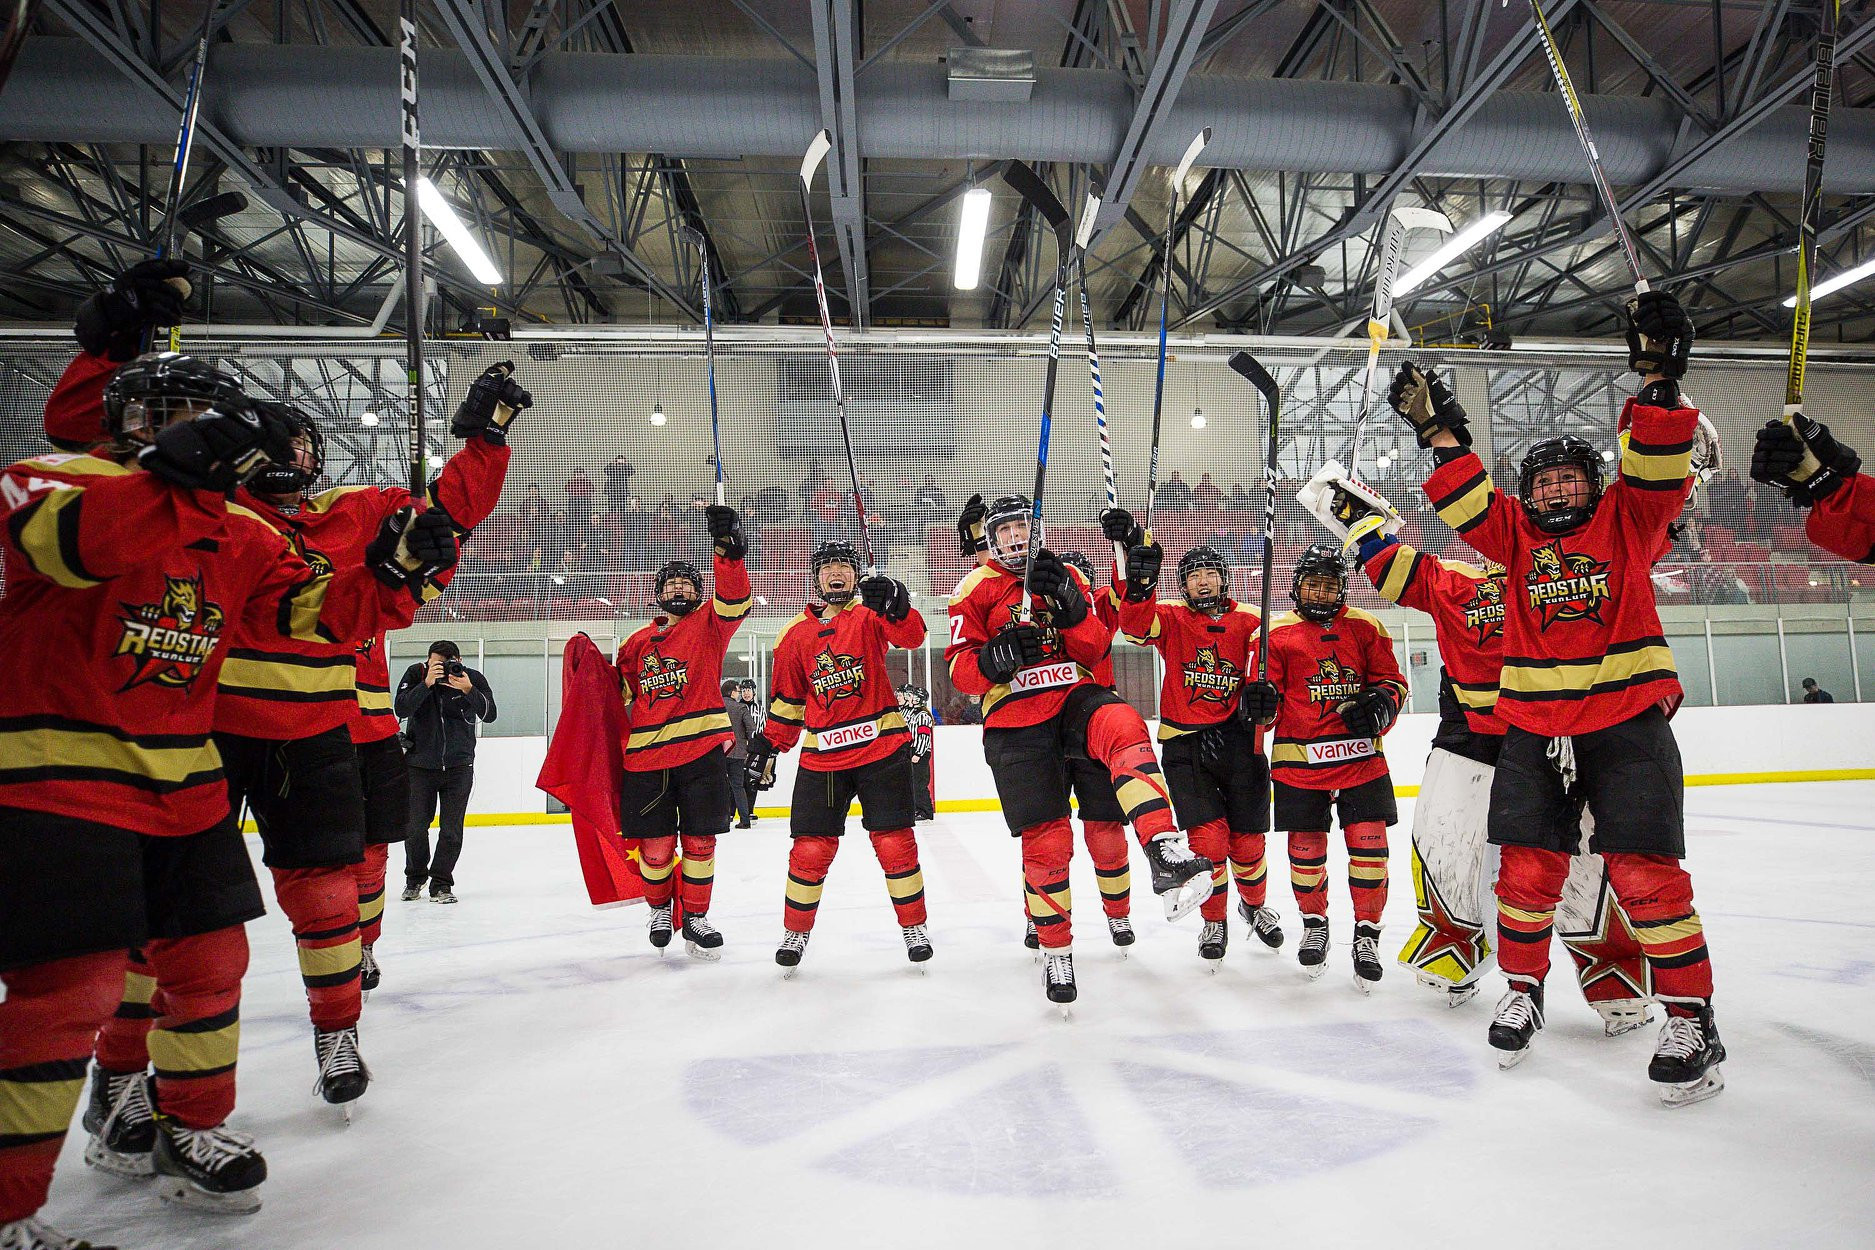 Chinese team's impressive performance in Canadian Women's Hockey League boosts Beijing 2022 hopes